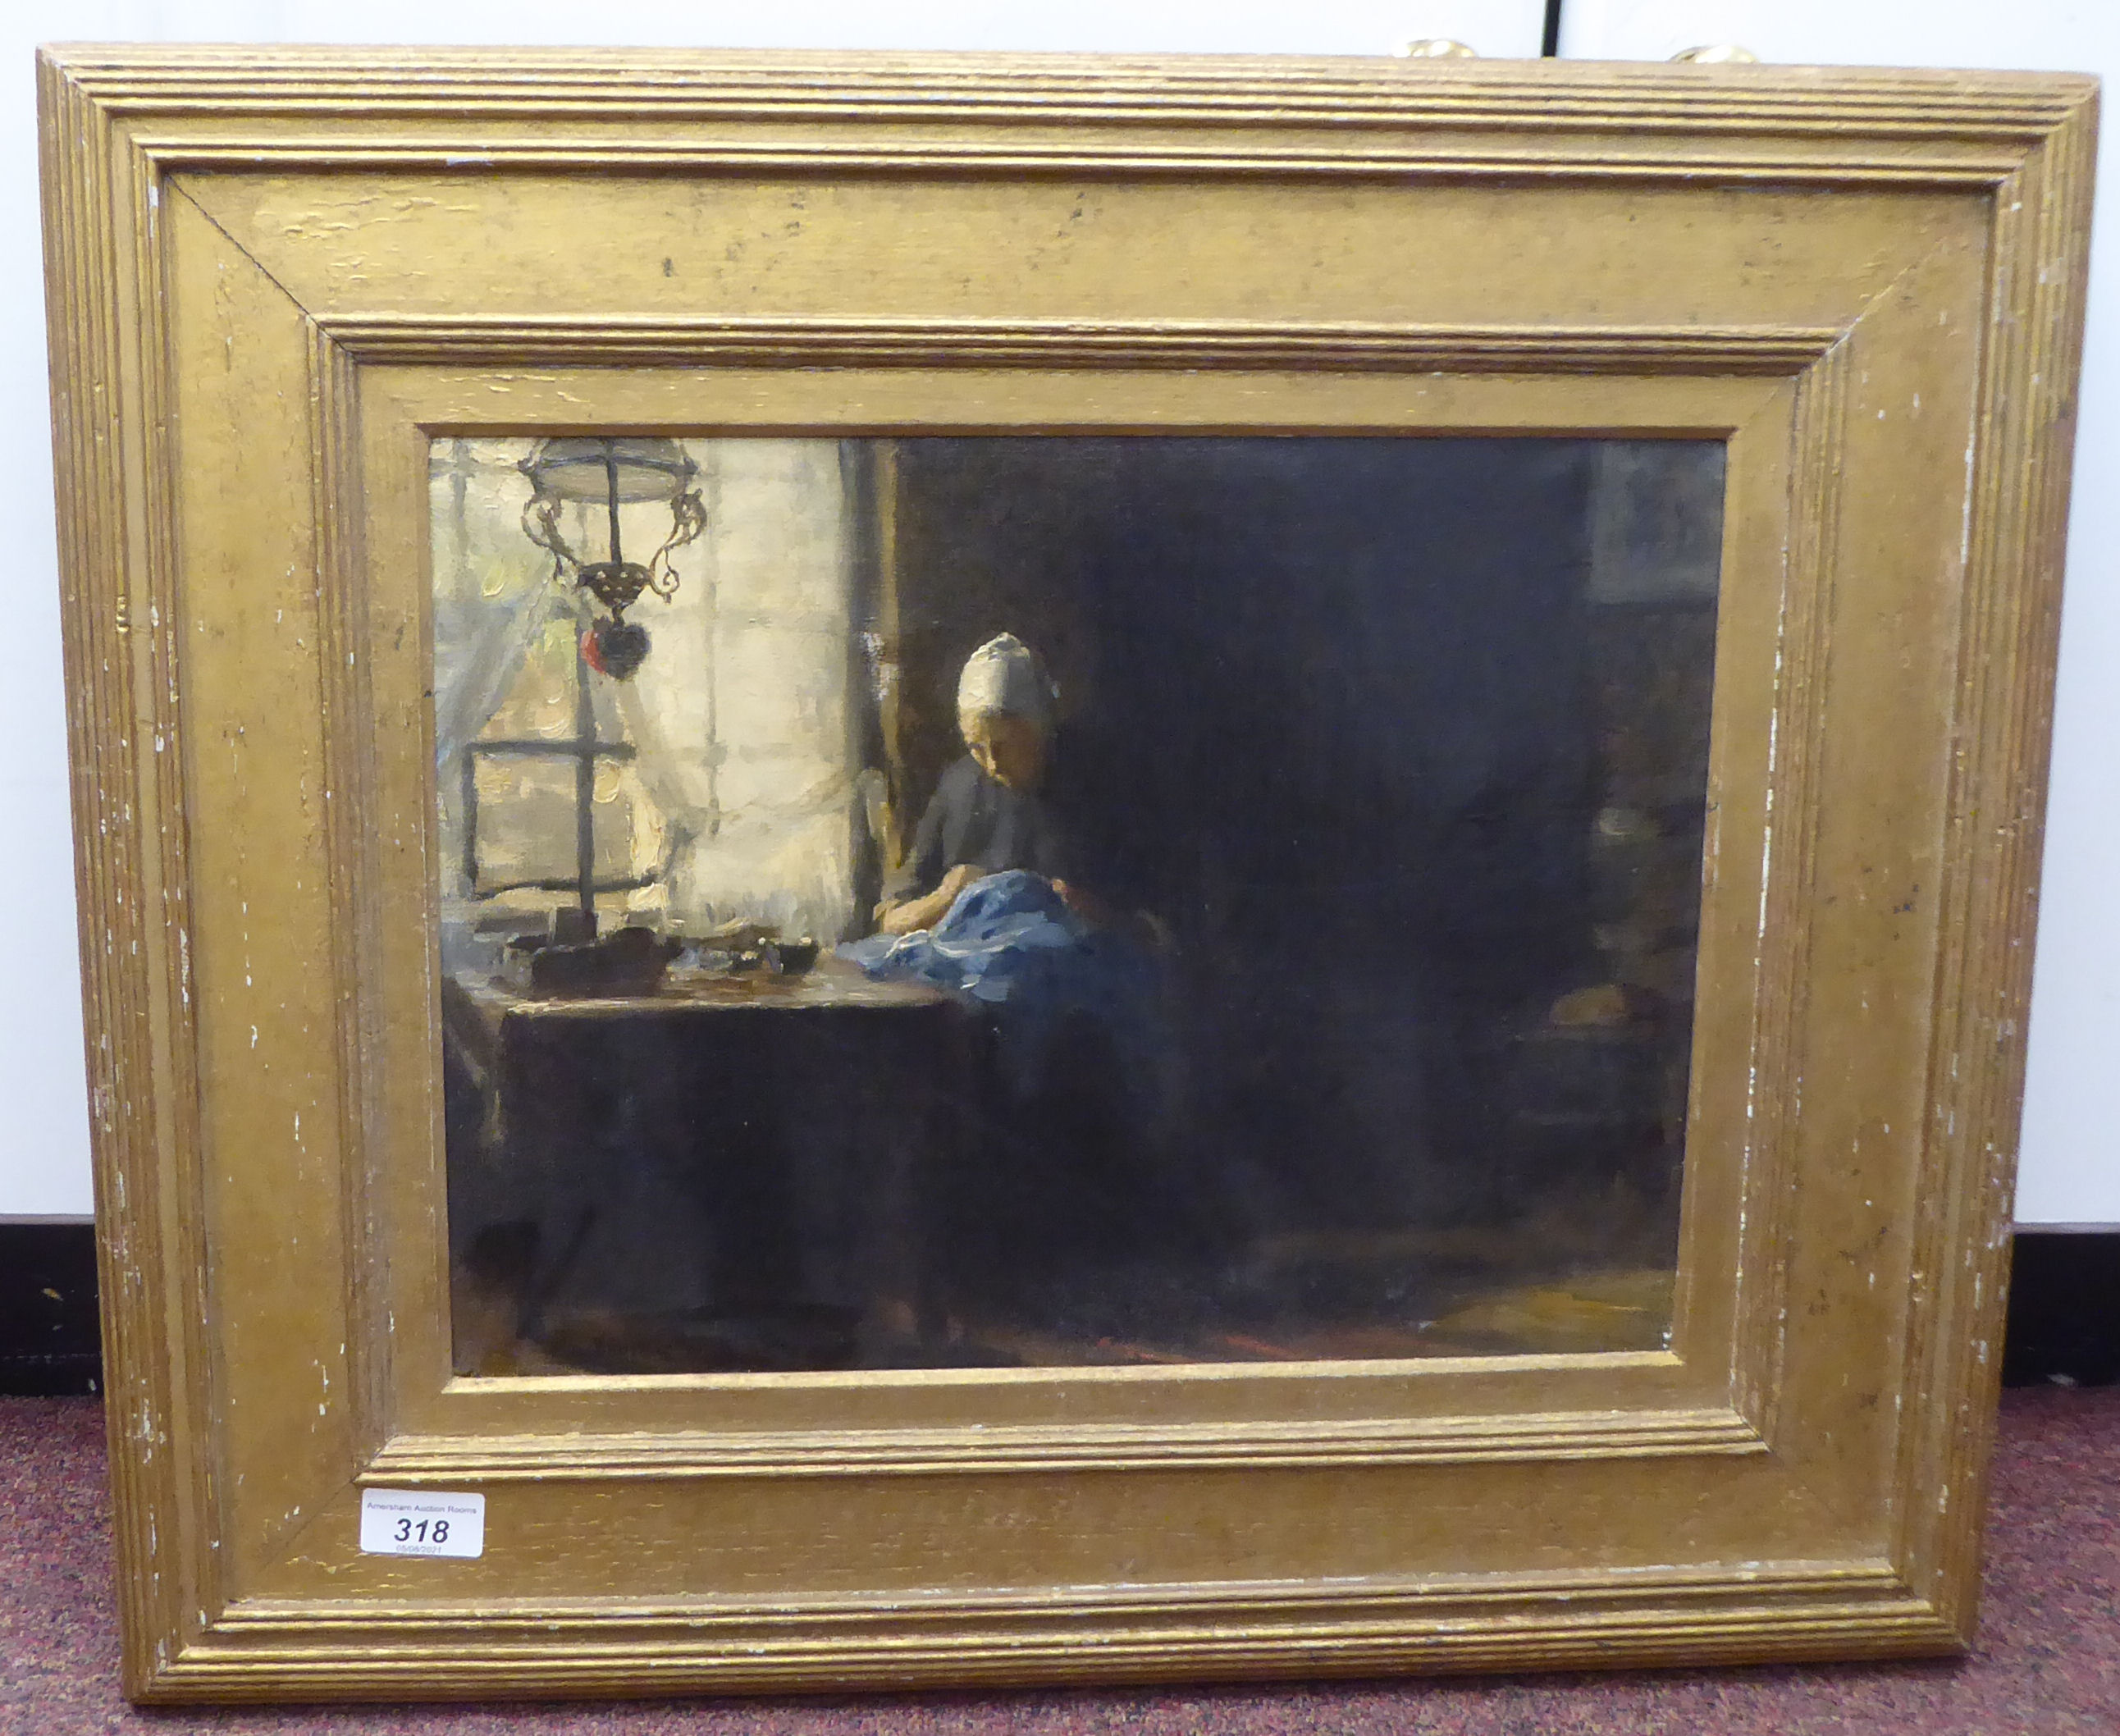 William Norton - a Dutch interior scene, depicting a woman doing needlework, seated at a table by